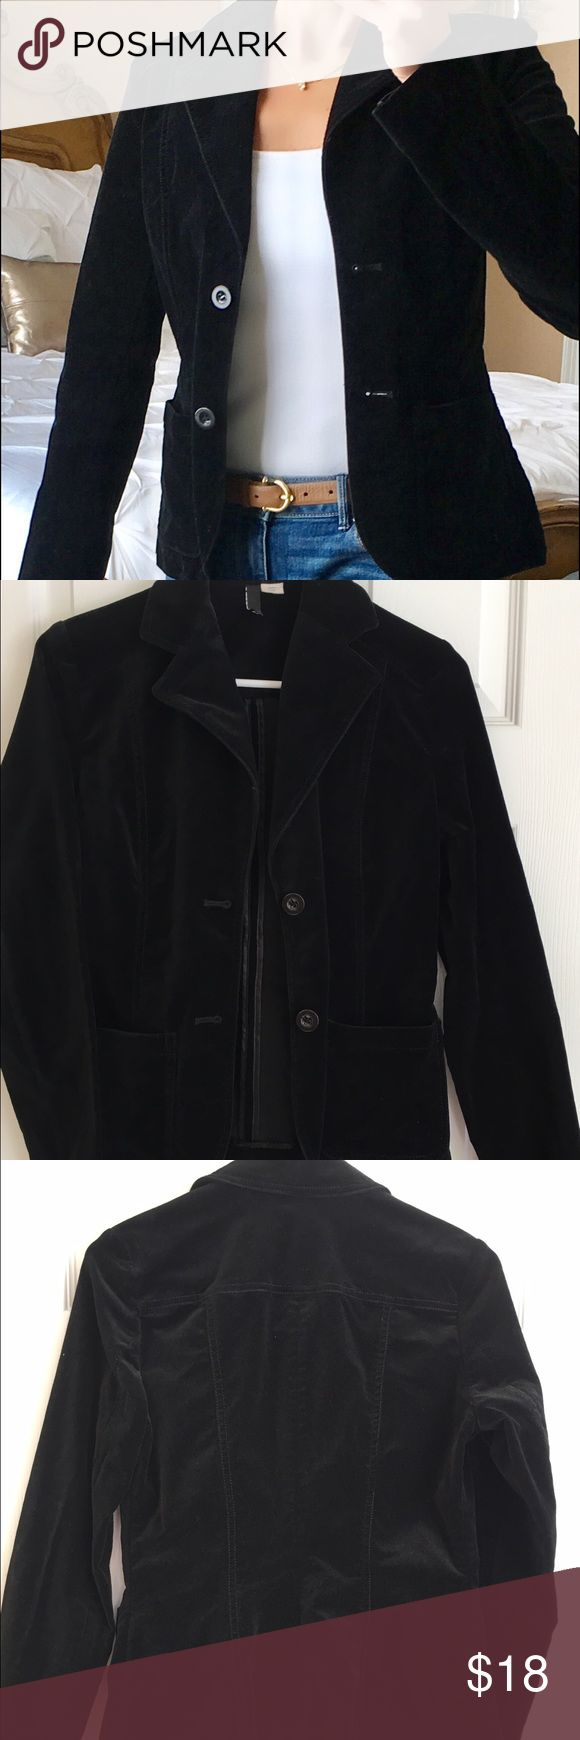 H&M black velvet blazer H&M black velvet blazer.  Size 6, but fits like a size 4. H&M Jackets & Coats Blazers